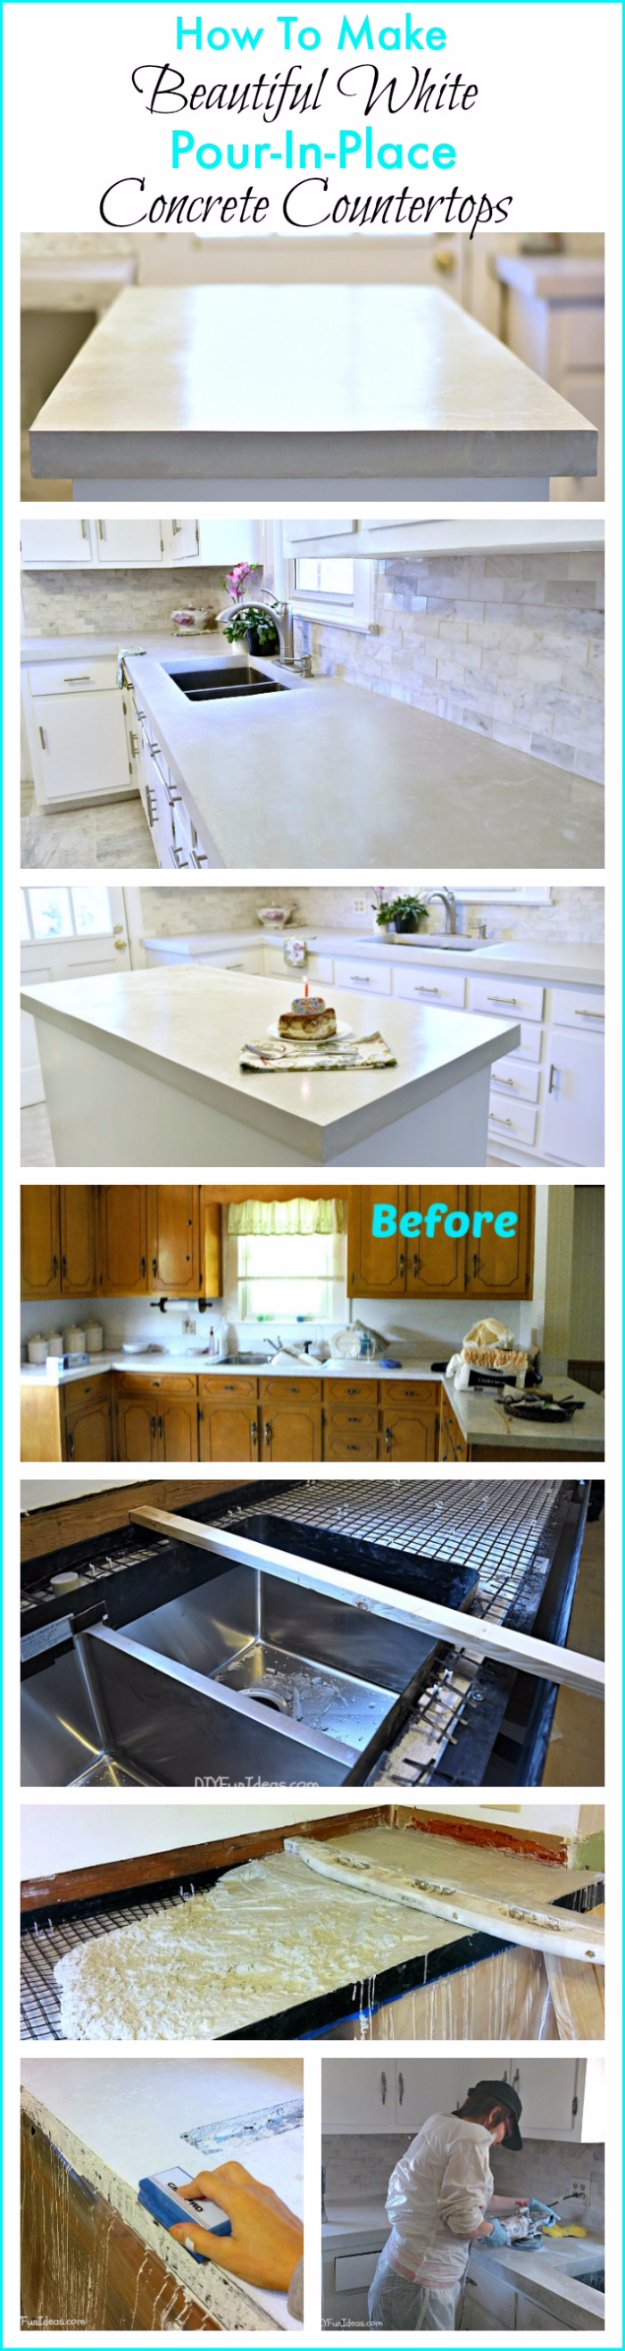 DIY Kitchen Makeover Ideas - DIY Cast In Place White Concrete Countertops - Cheap Projects Projects You Can Make On A Budget - Cabinets, Counter Tops, Paint Tutorials, Islands and Faux Granite. Tutorials and Step by Step Instructions